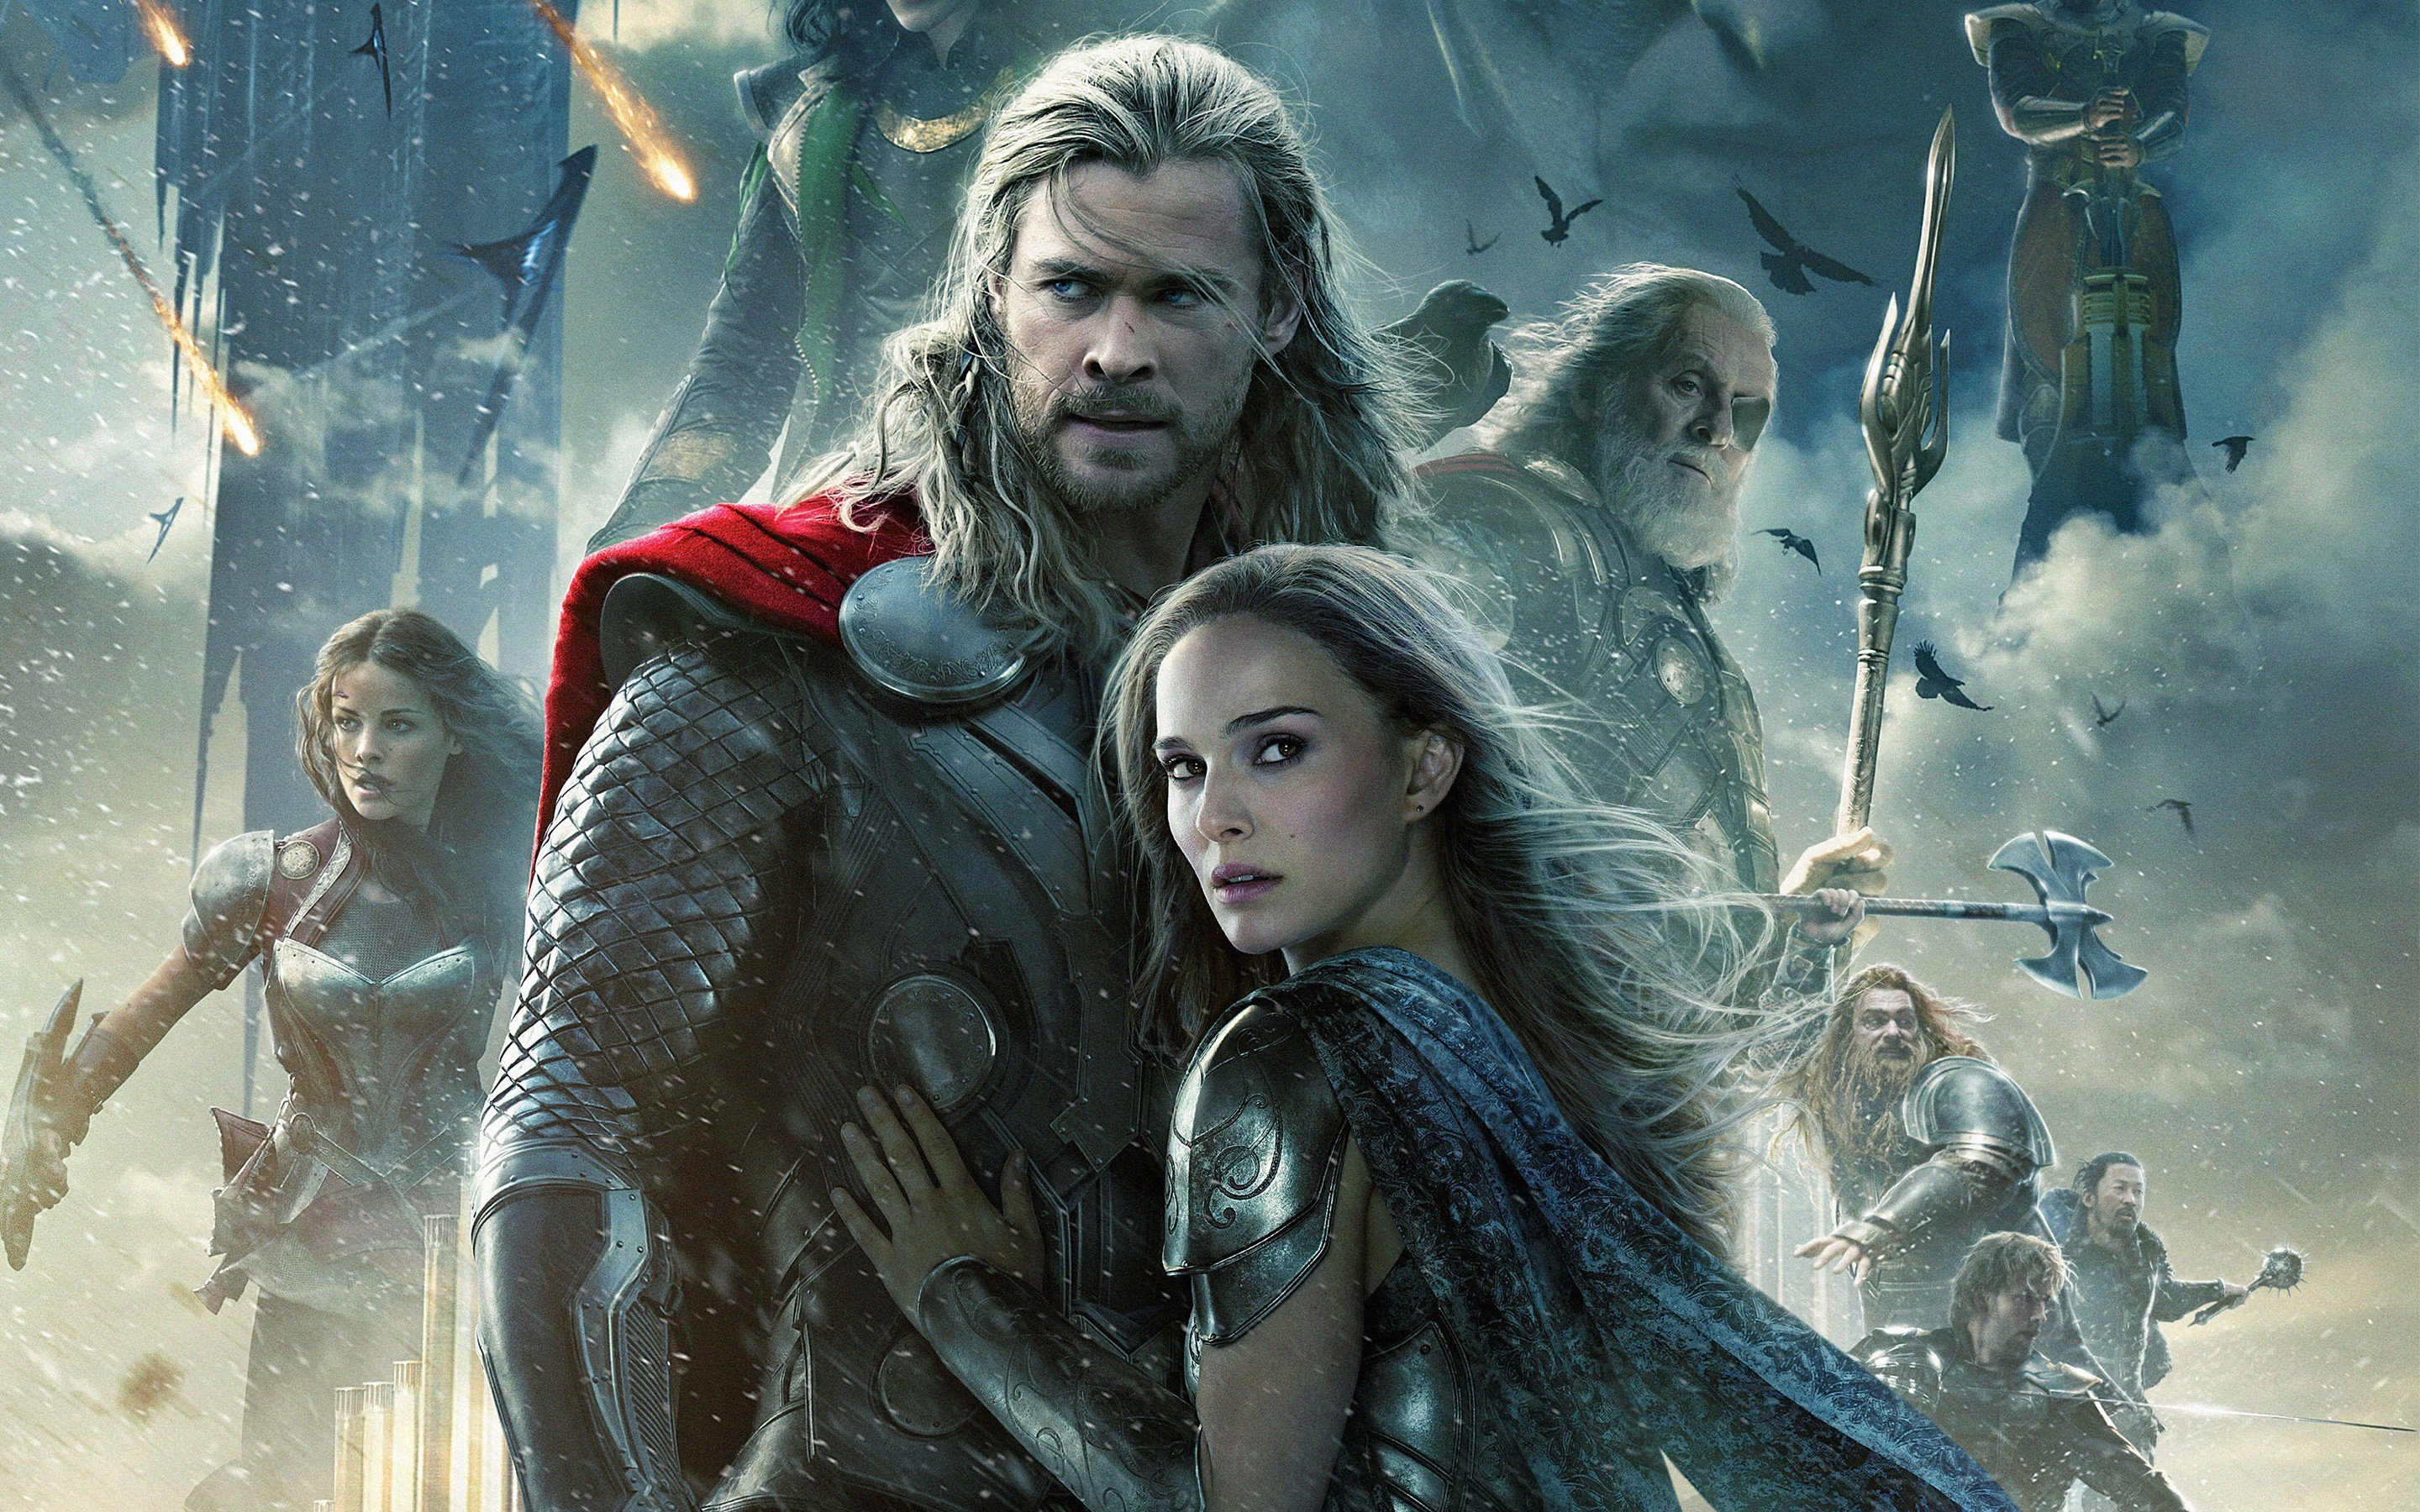 2048x1152 Thor Movie 2048x1152 Resolution Hd 4k Wallpapers Images